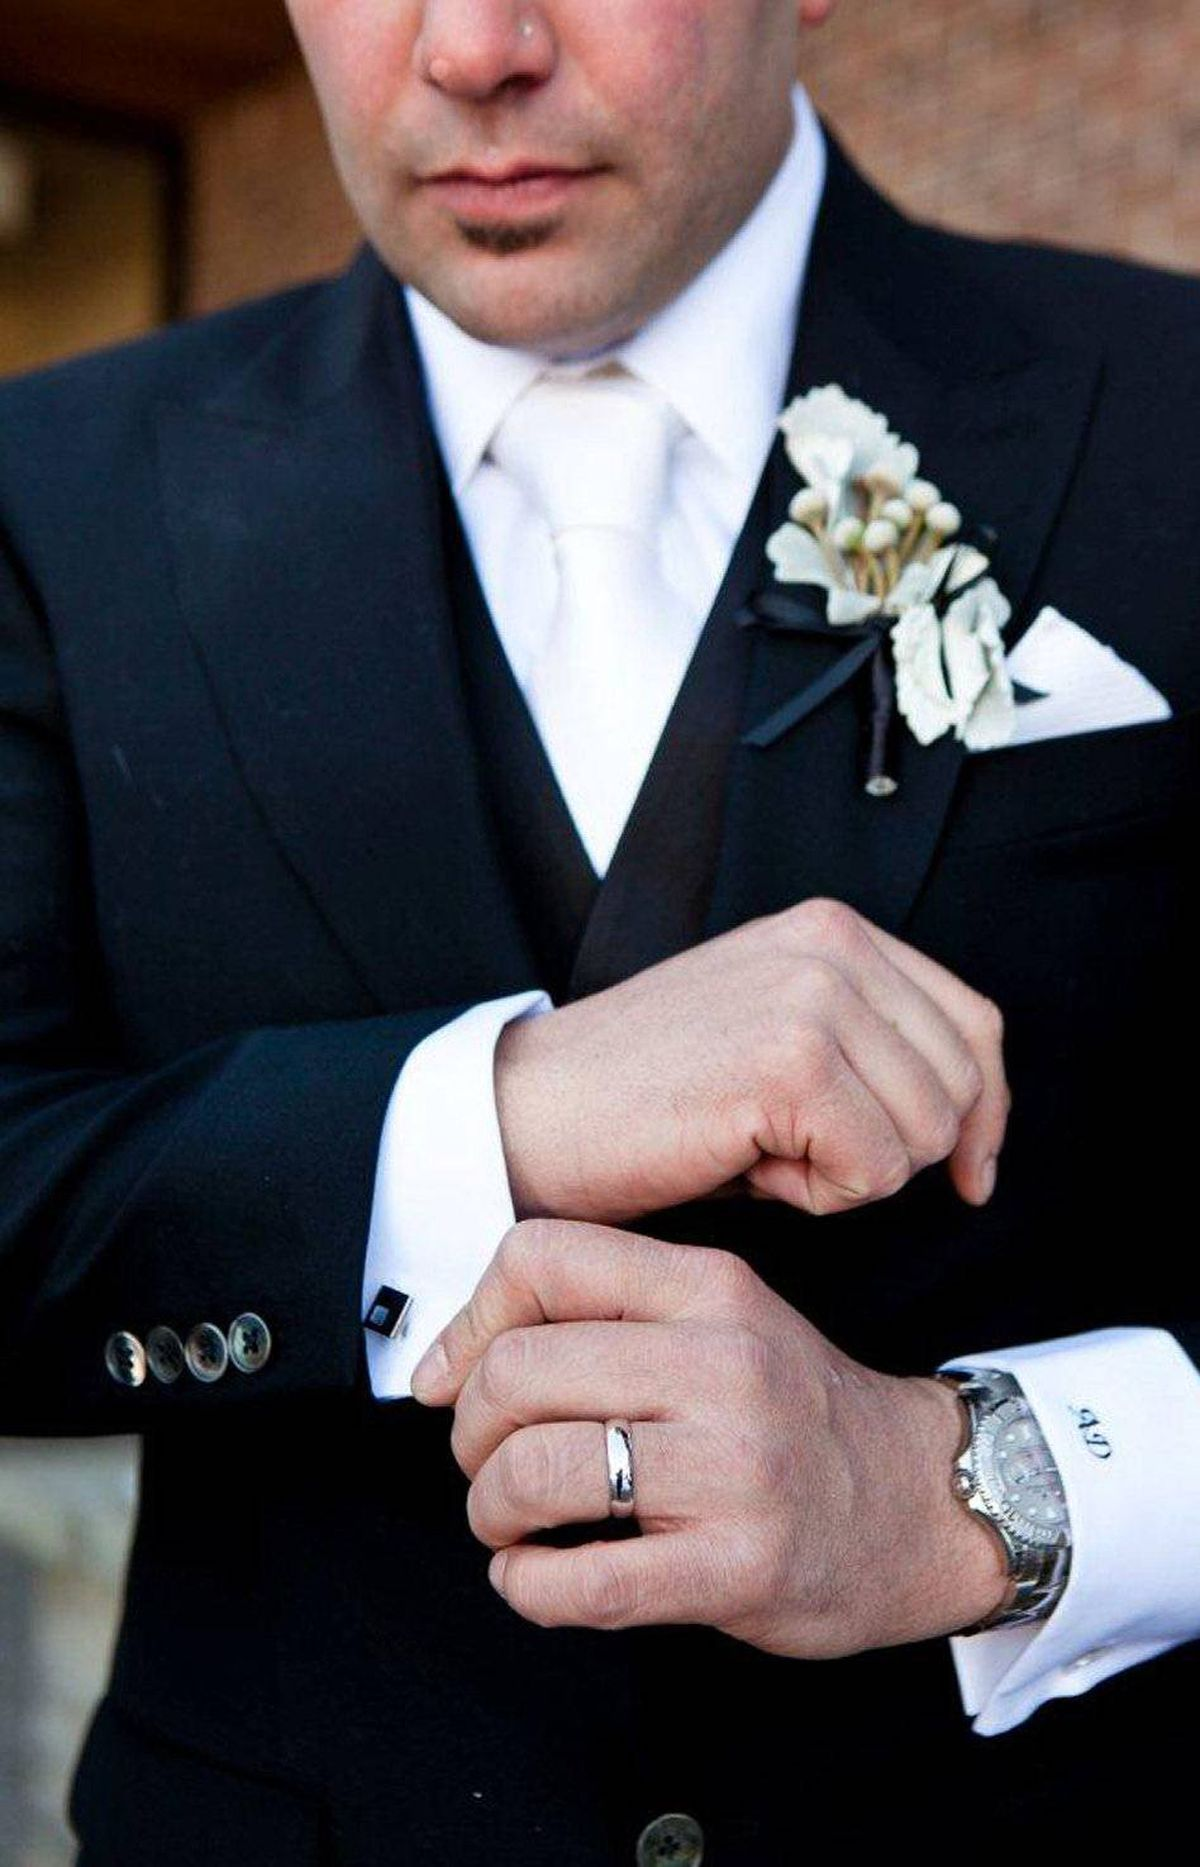 BESPOKE SUITS AND RENTED GOWNS In the past, grooms rented their wedding outfits and brides purchased theirs. Today, though, the practices are being reversed: More and more men are buying custom-made suits for their special day, while thrifty brides are leasing them through salons like Montreal's Oui, Je Le Voeux.